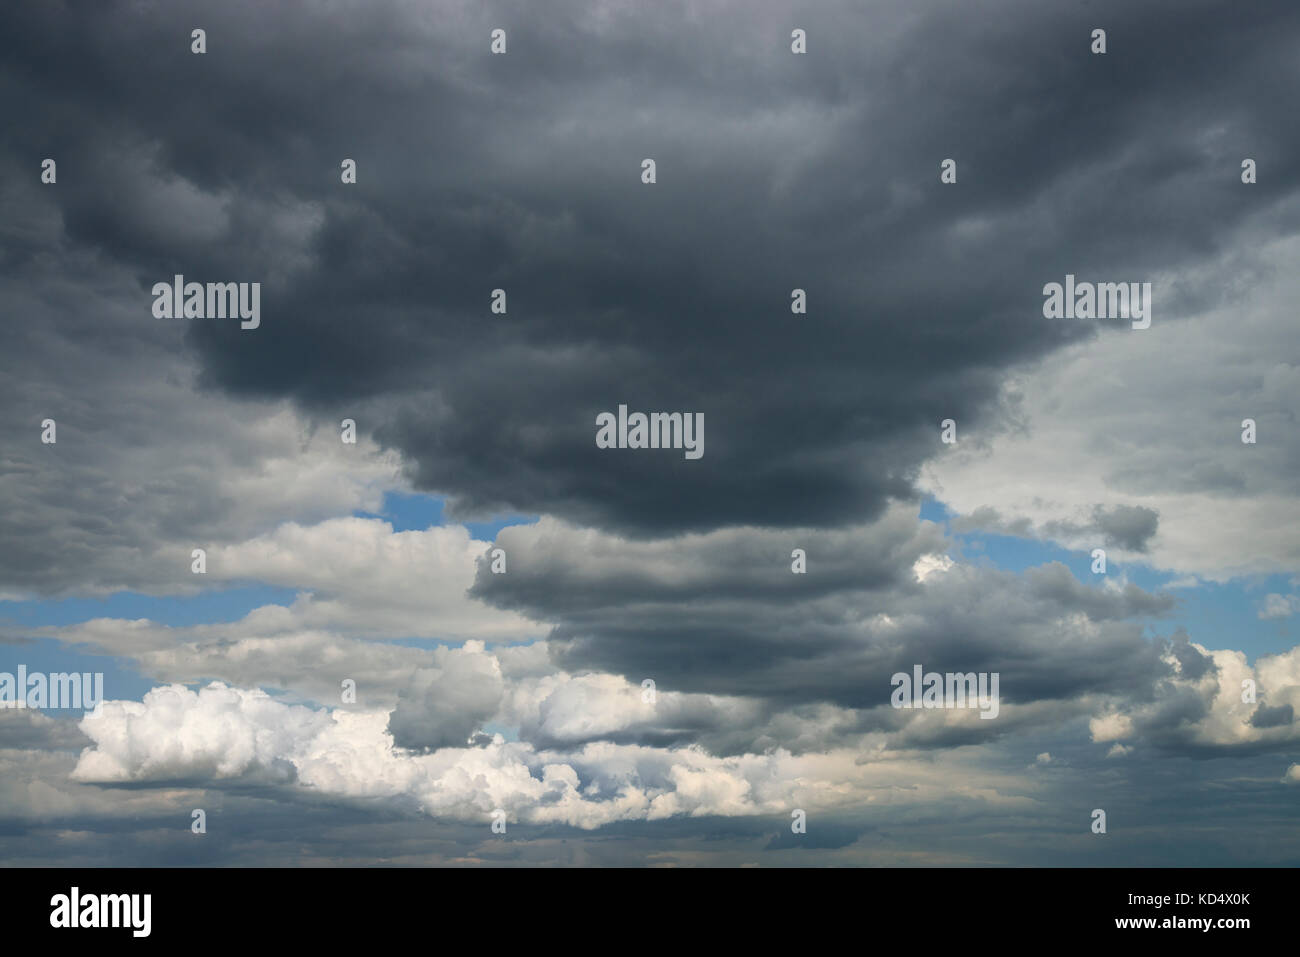 Interesting & Dramatic Storm Cloud Formation - Stock Image